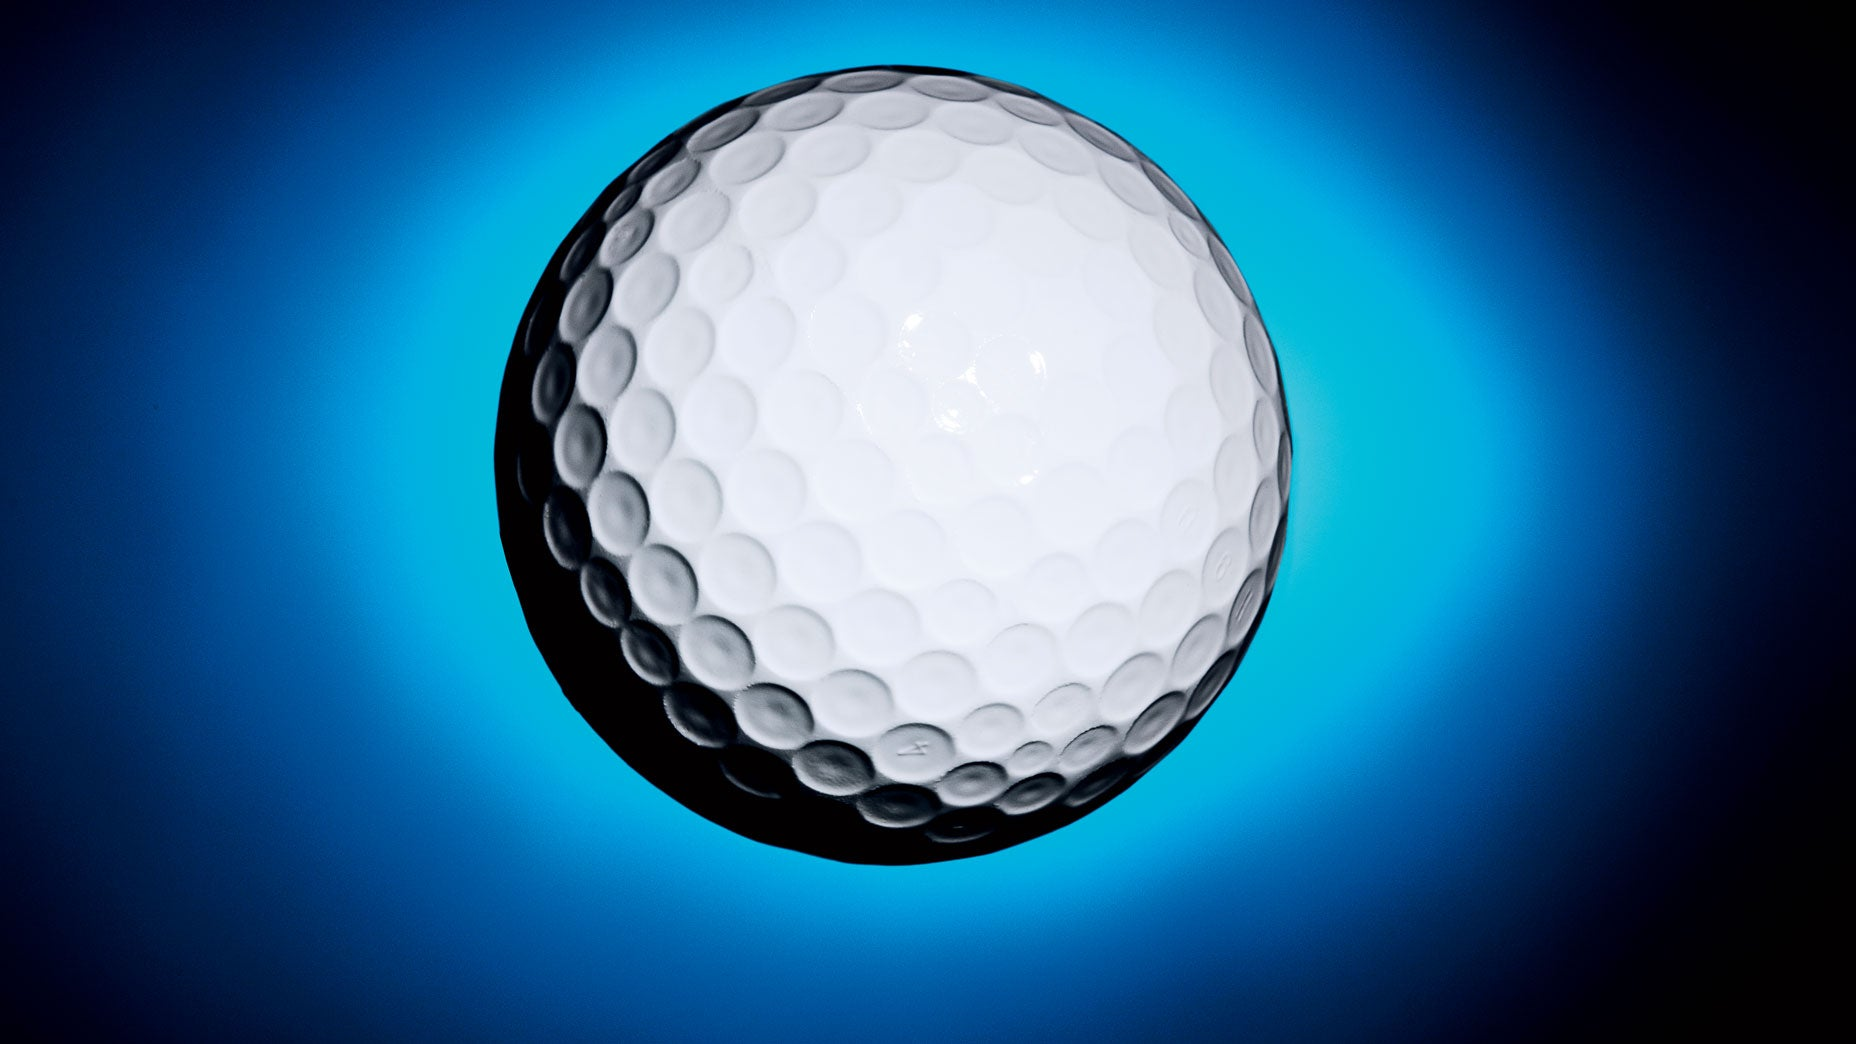 Golf ball on blue background